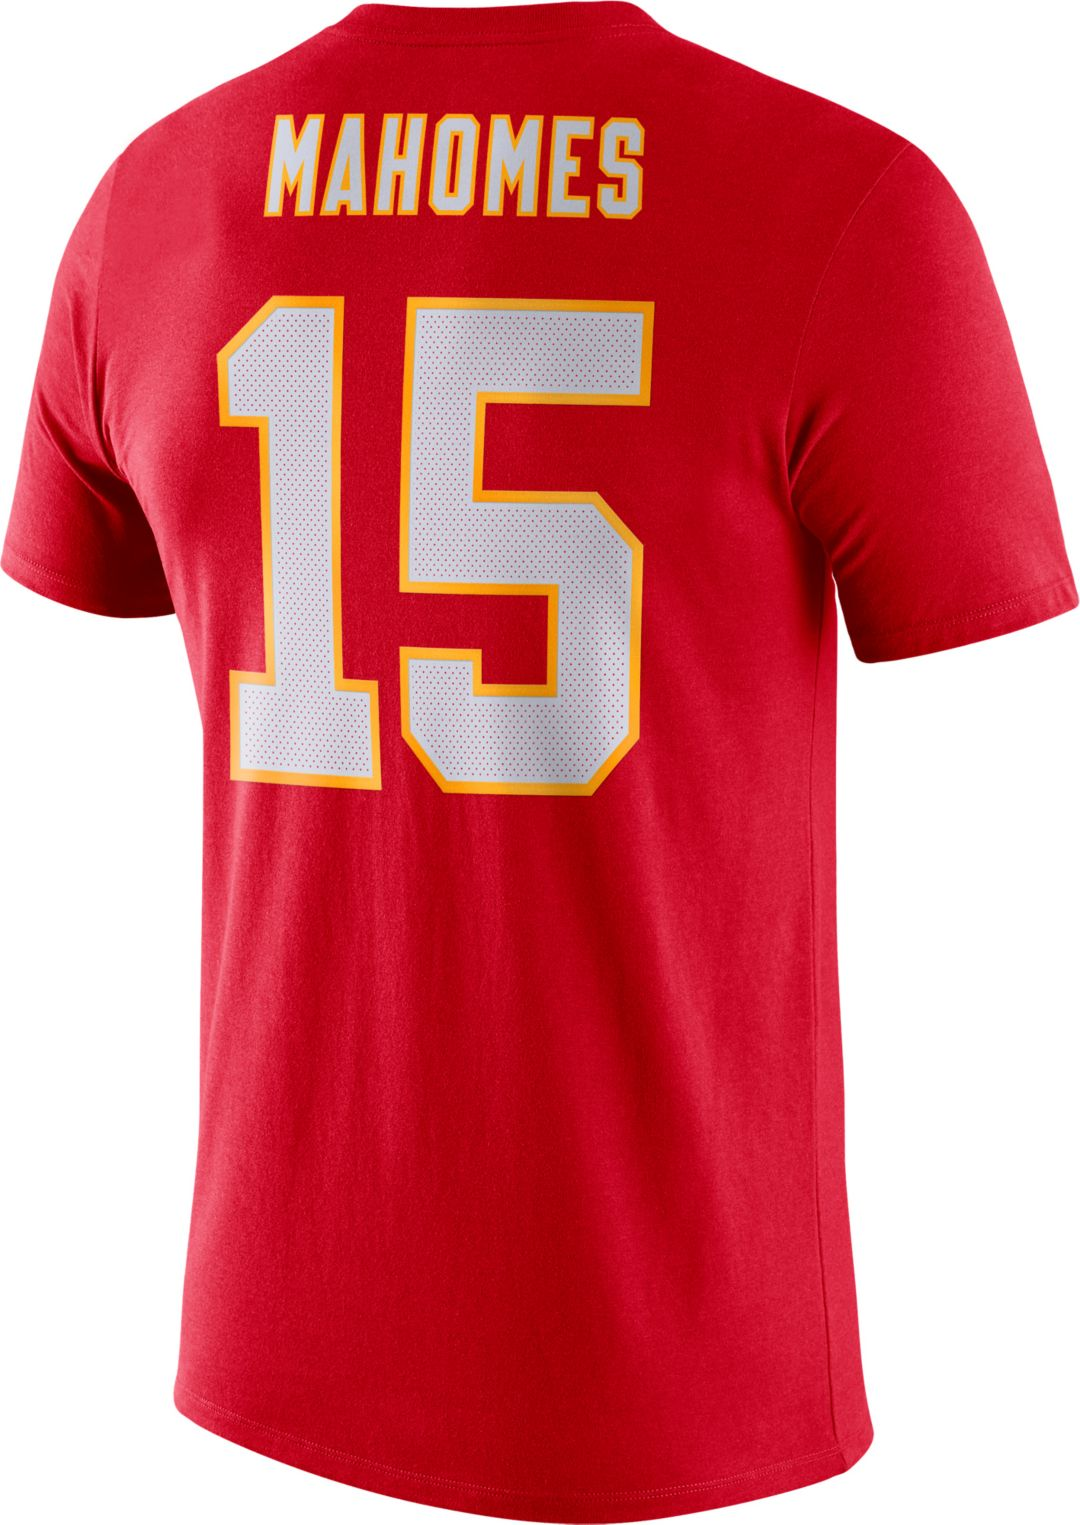 finest selection 176d4 8a431 Nike Men's Kansas City Chiefs Patrick Mahomes #15 Logo Red T-Shirt